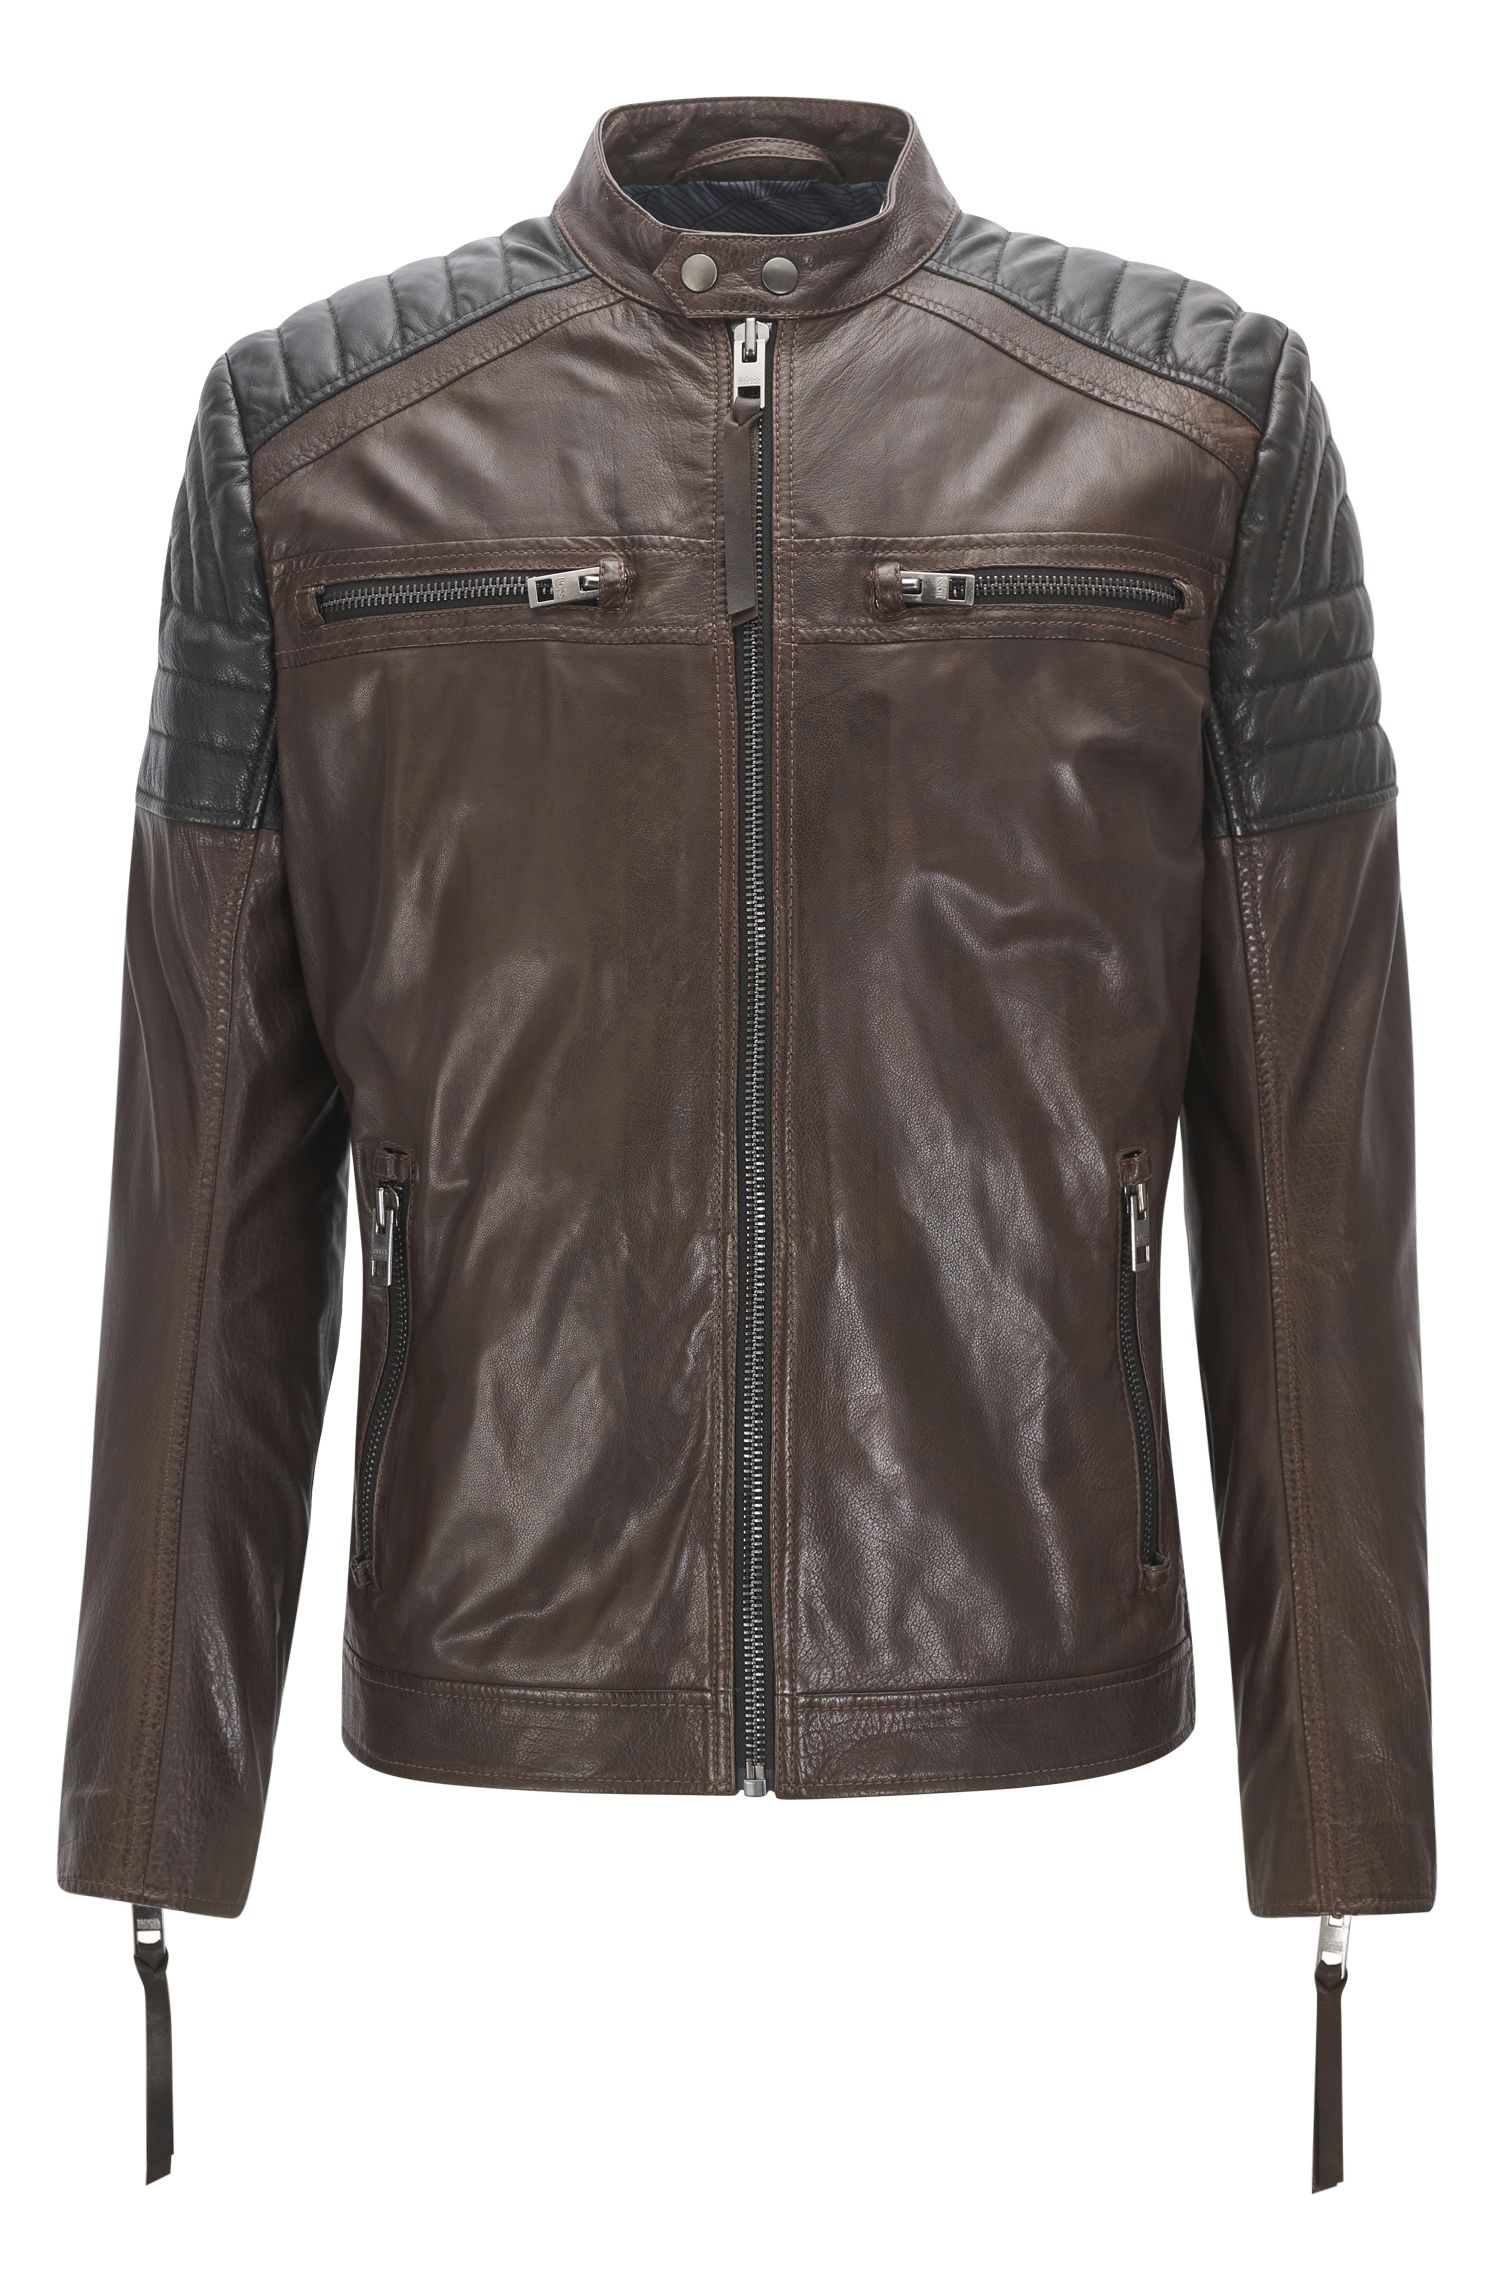 Biker jacket in pull-up waxed calf leather